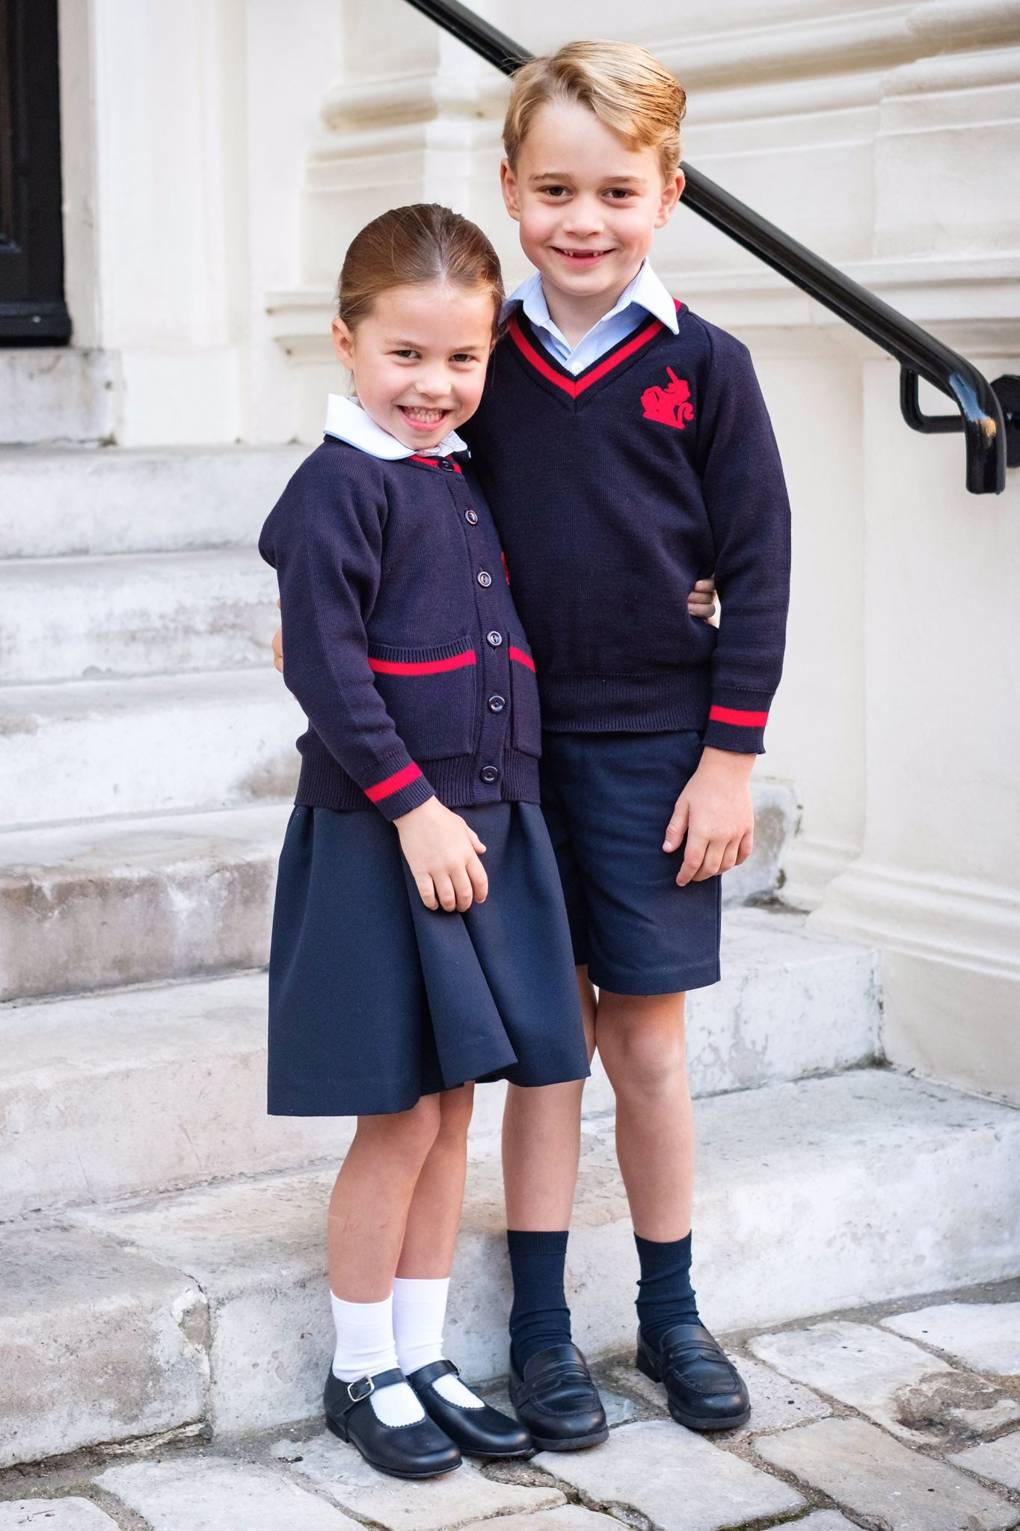 Princess Charlotte and Prince George look adorable in a sibling portrait on their first day of school